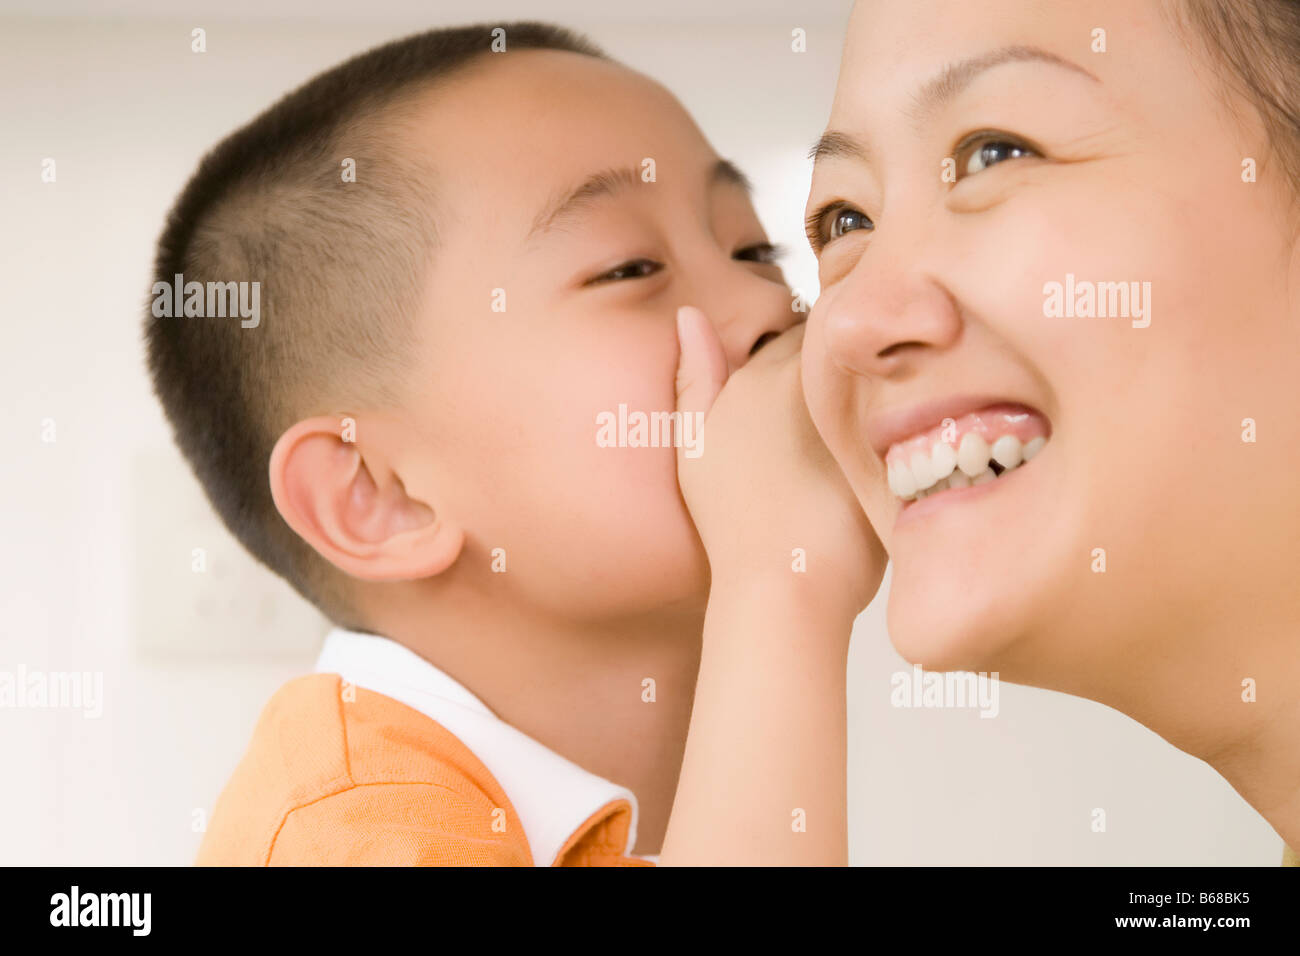 Close-up of a boy whispering to his mother - Stock Image